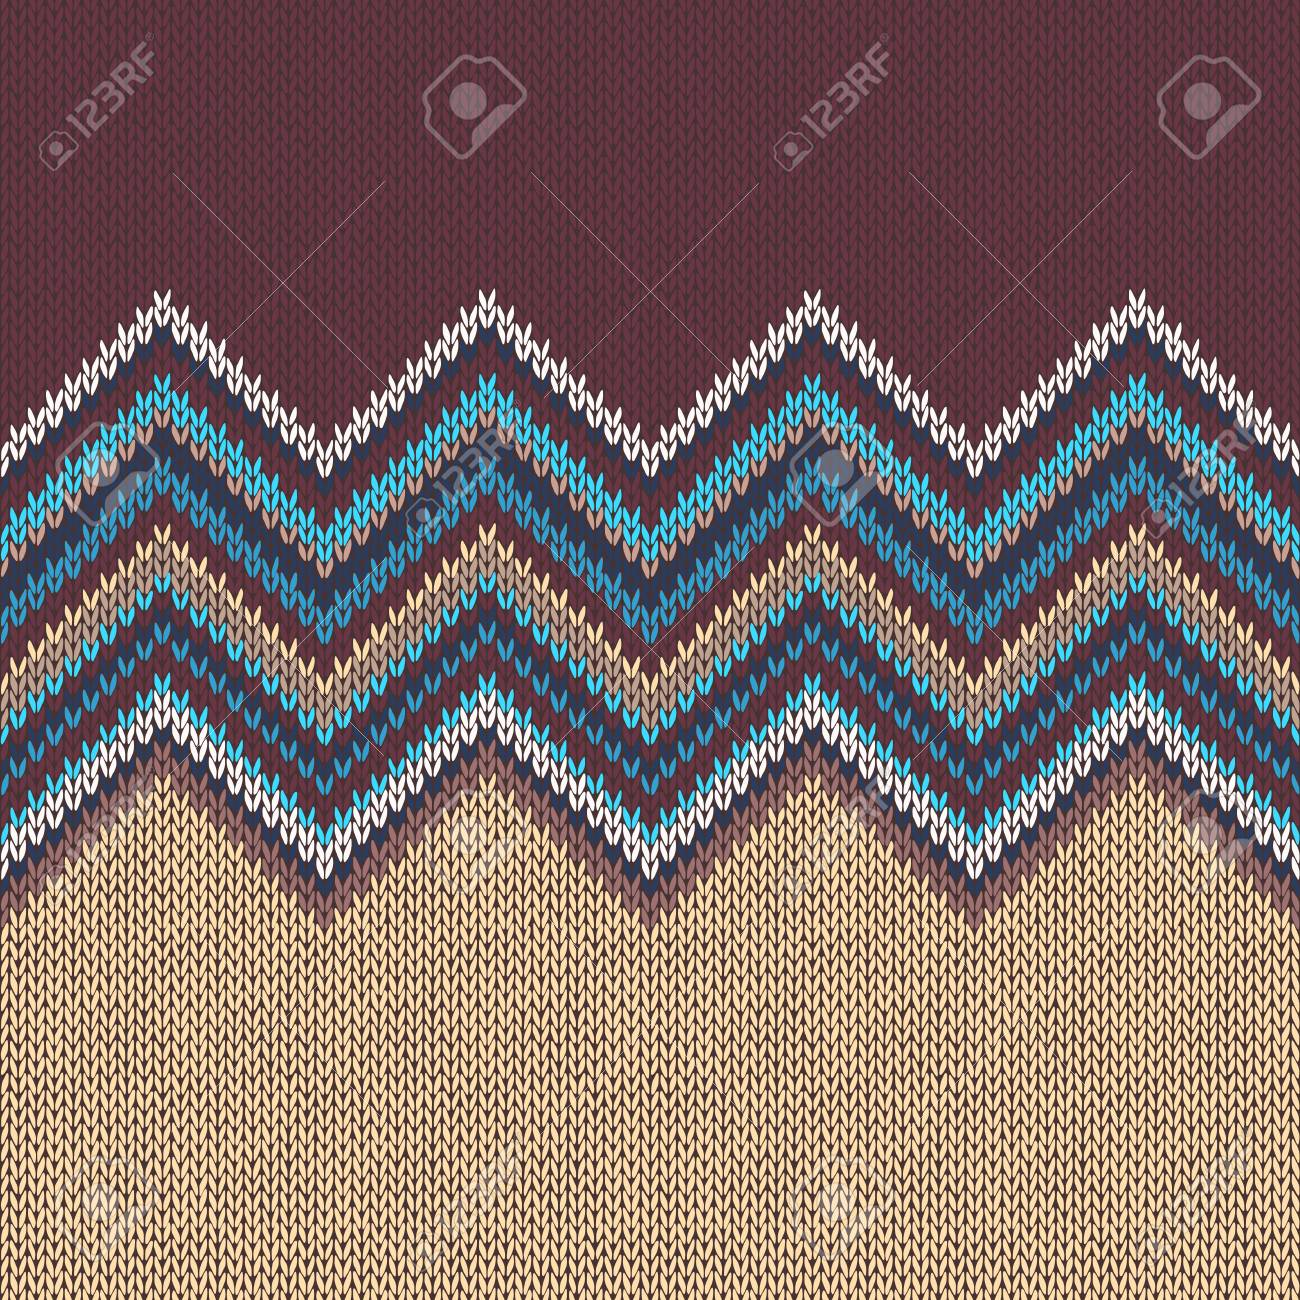 Seamless Knitting Pattern With Wave Ornament In Brown Blue White ...